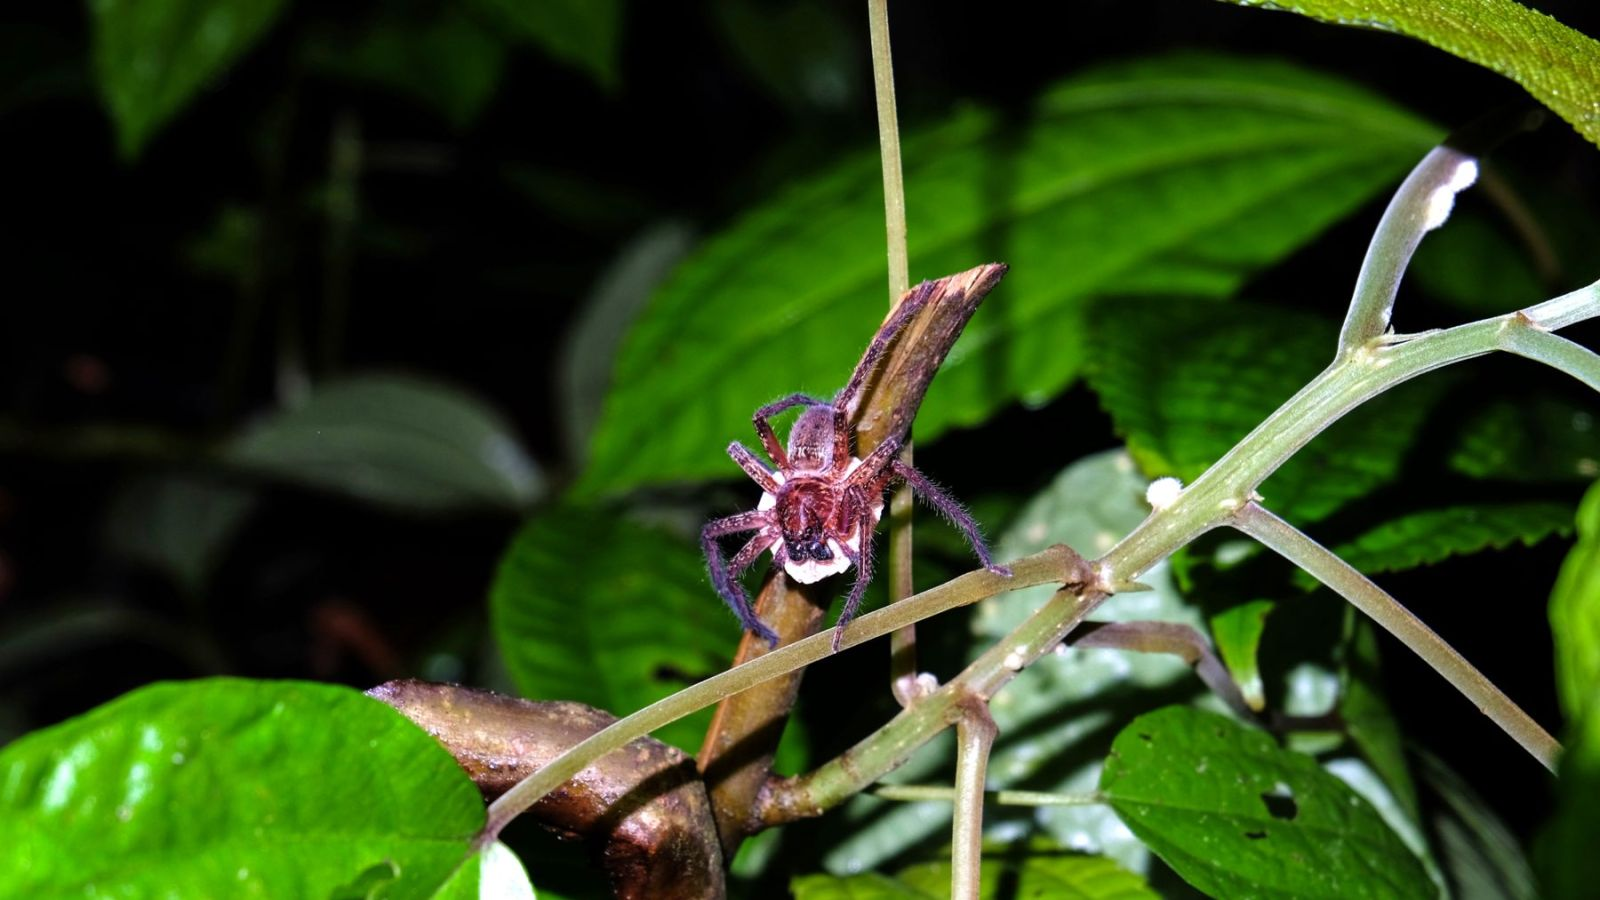 a photo of a spider carrying a cocoon in gunung leuser national park.